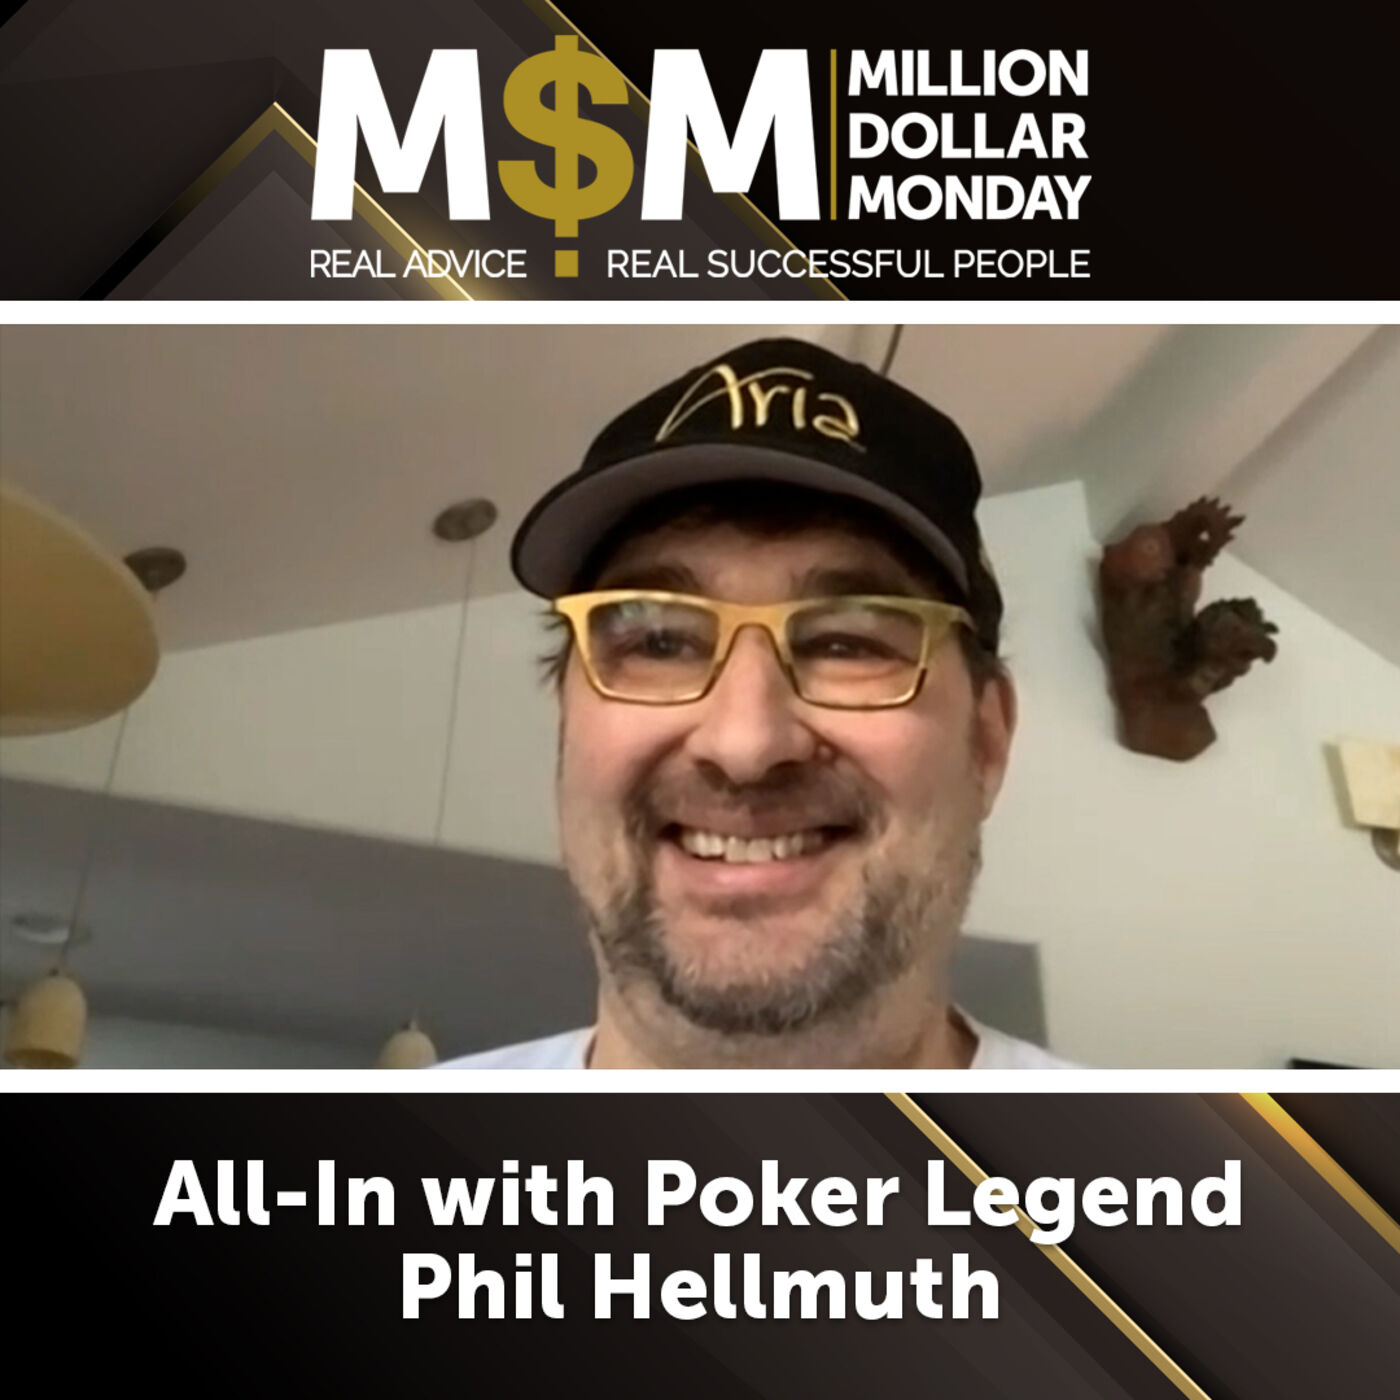 All-In with Poker Legend Phil Hellmuth